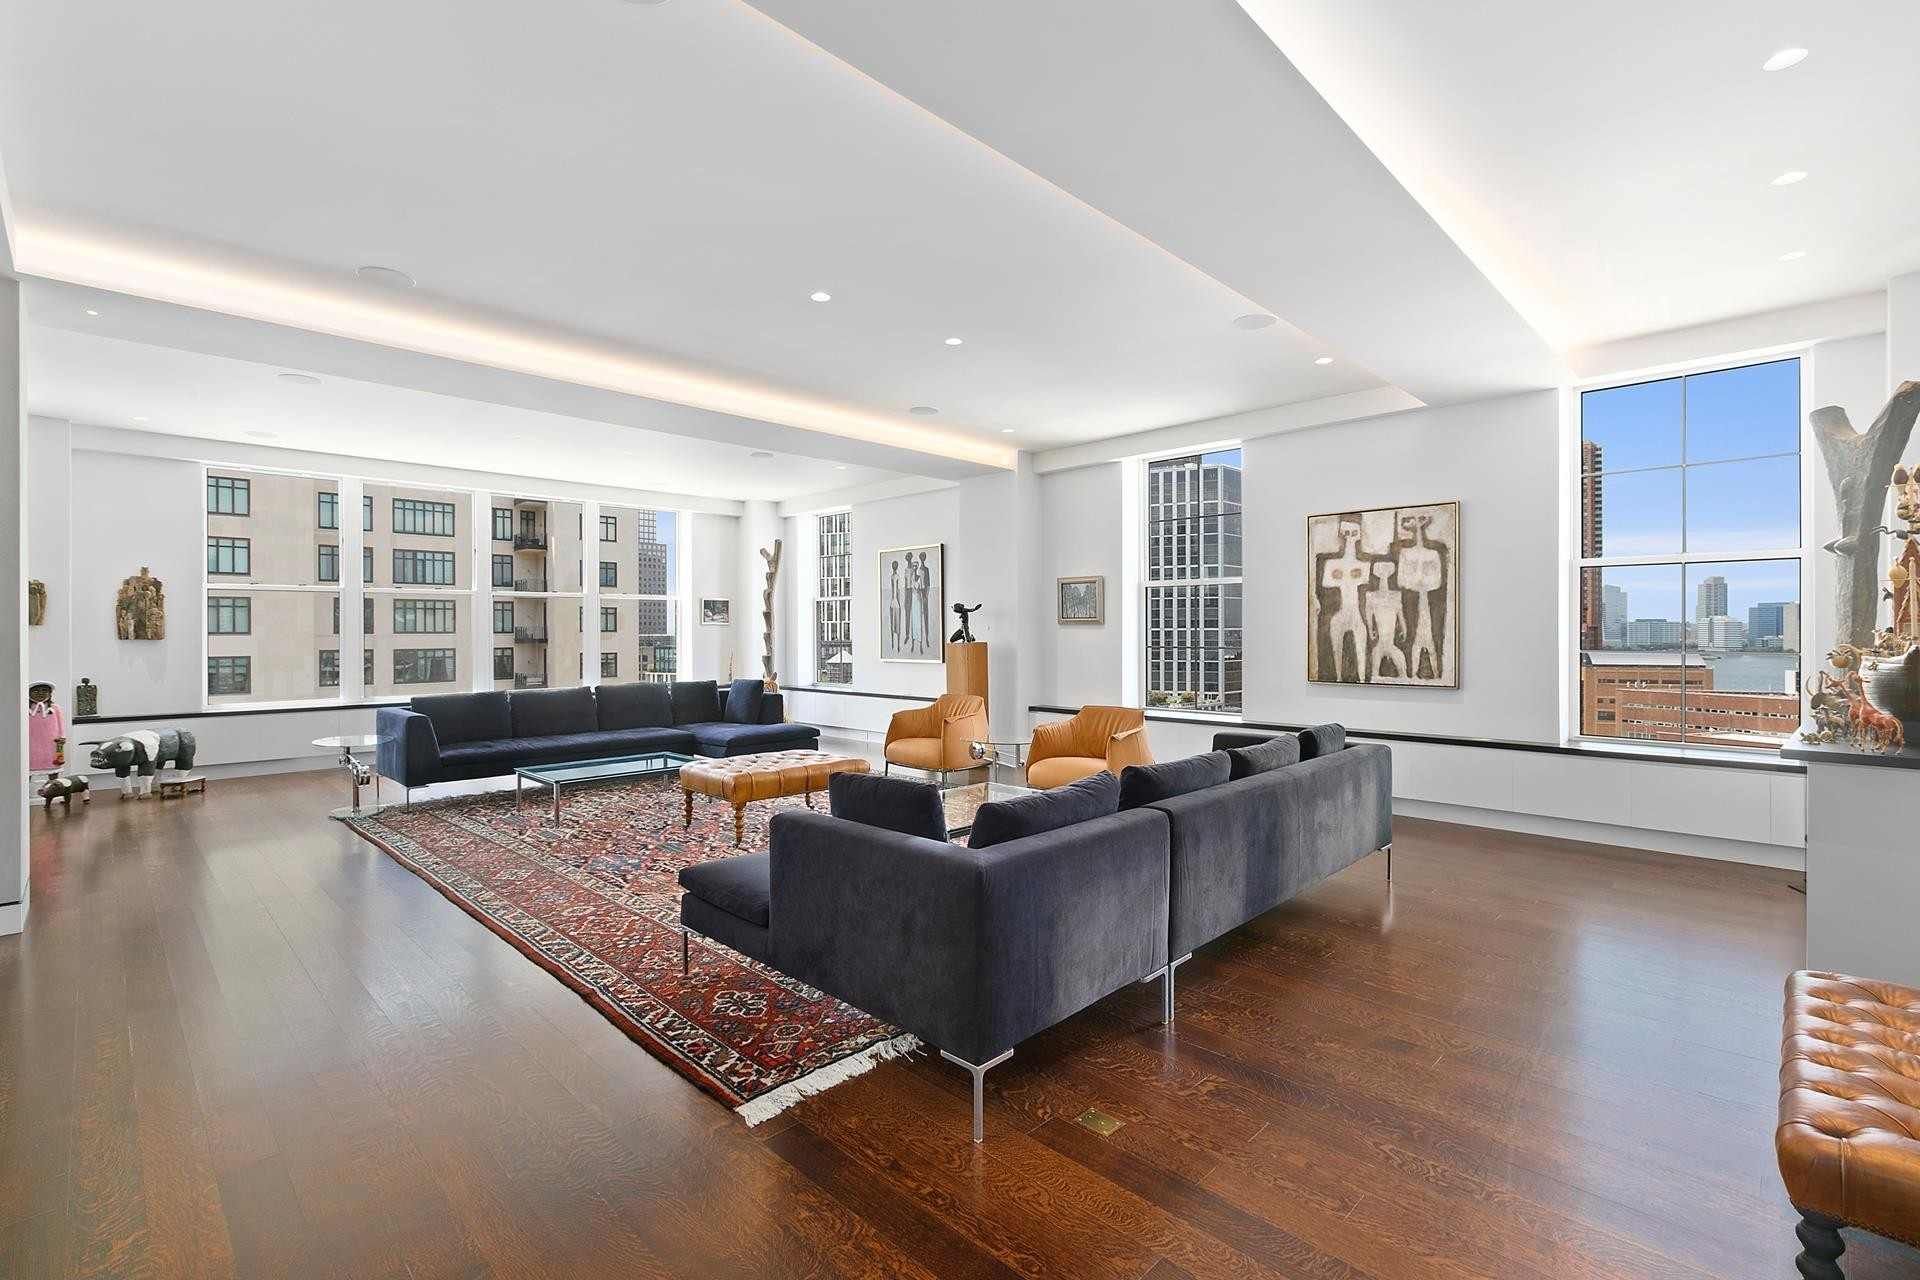 Condominium for Sale at DUANE PARK LOFTS, 166 DUANE ST , PHB TriBeCa, New York, NY 10013